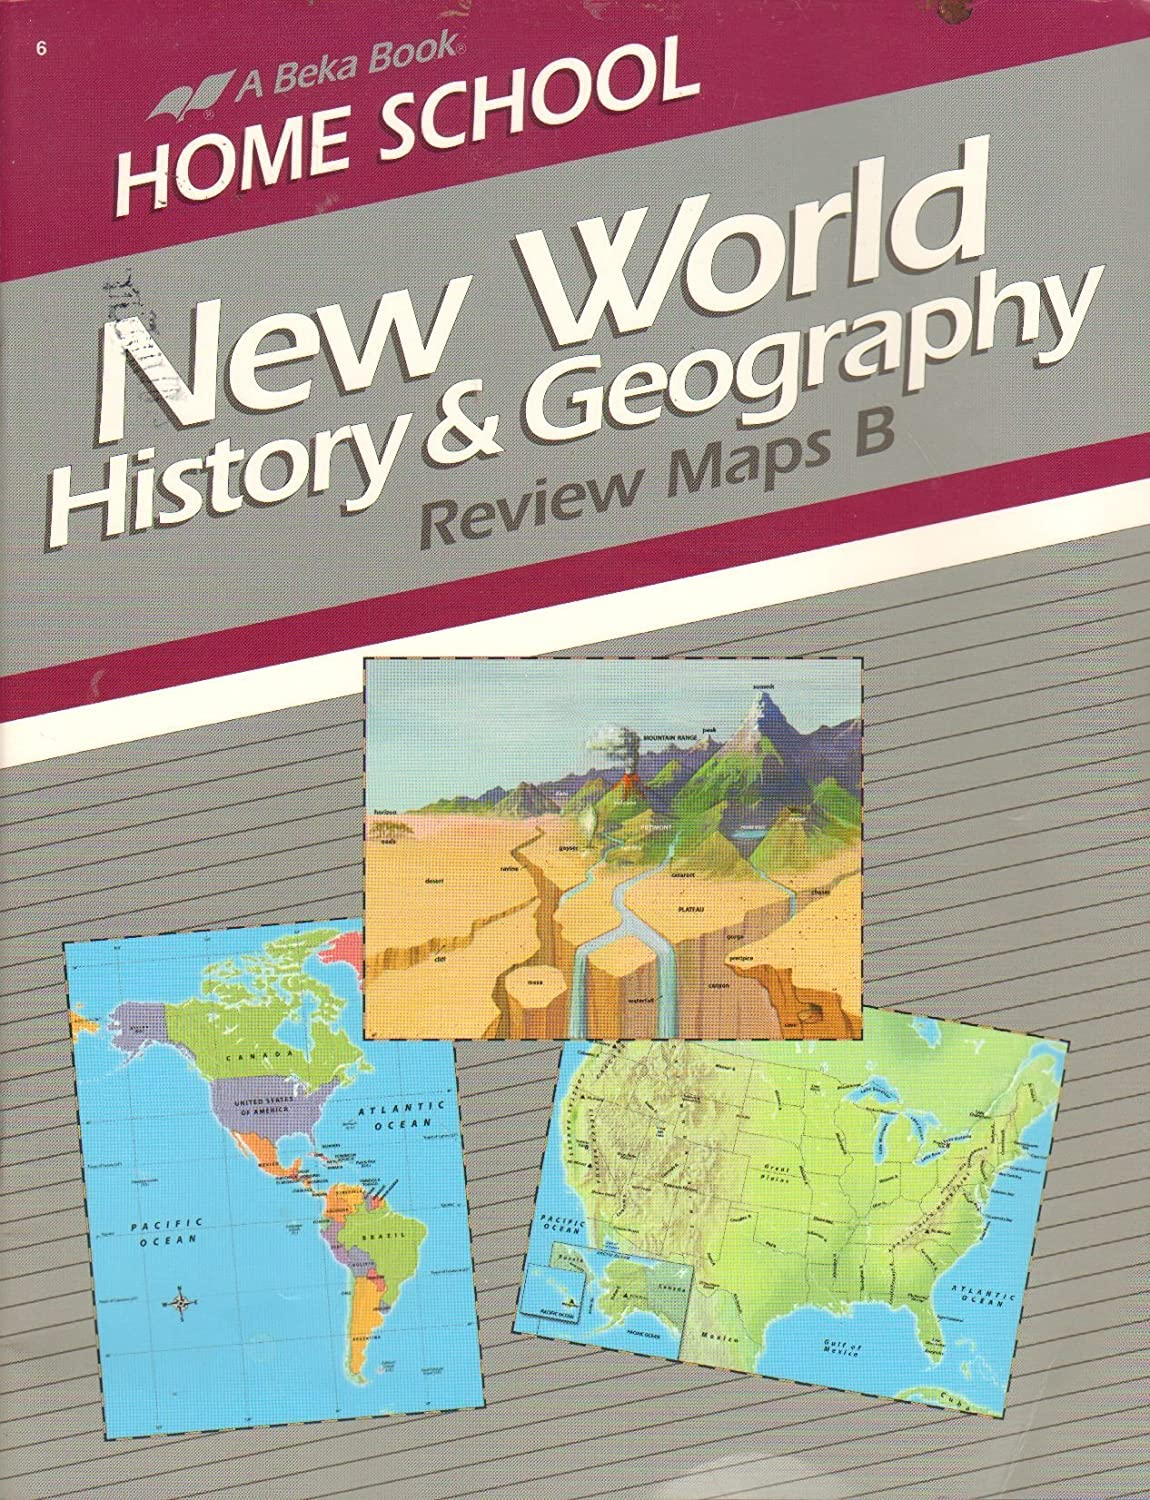 Amazon new world history and geography review maps b a beka amazon new world history and geography review maps b a beka book the complete book of maps and geography office products gumiabroncs Image collections